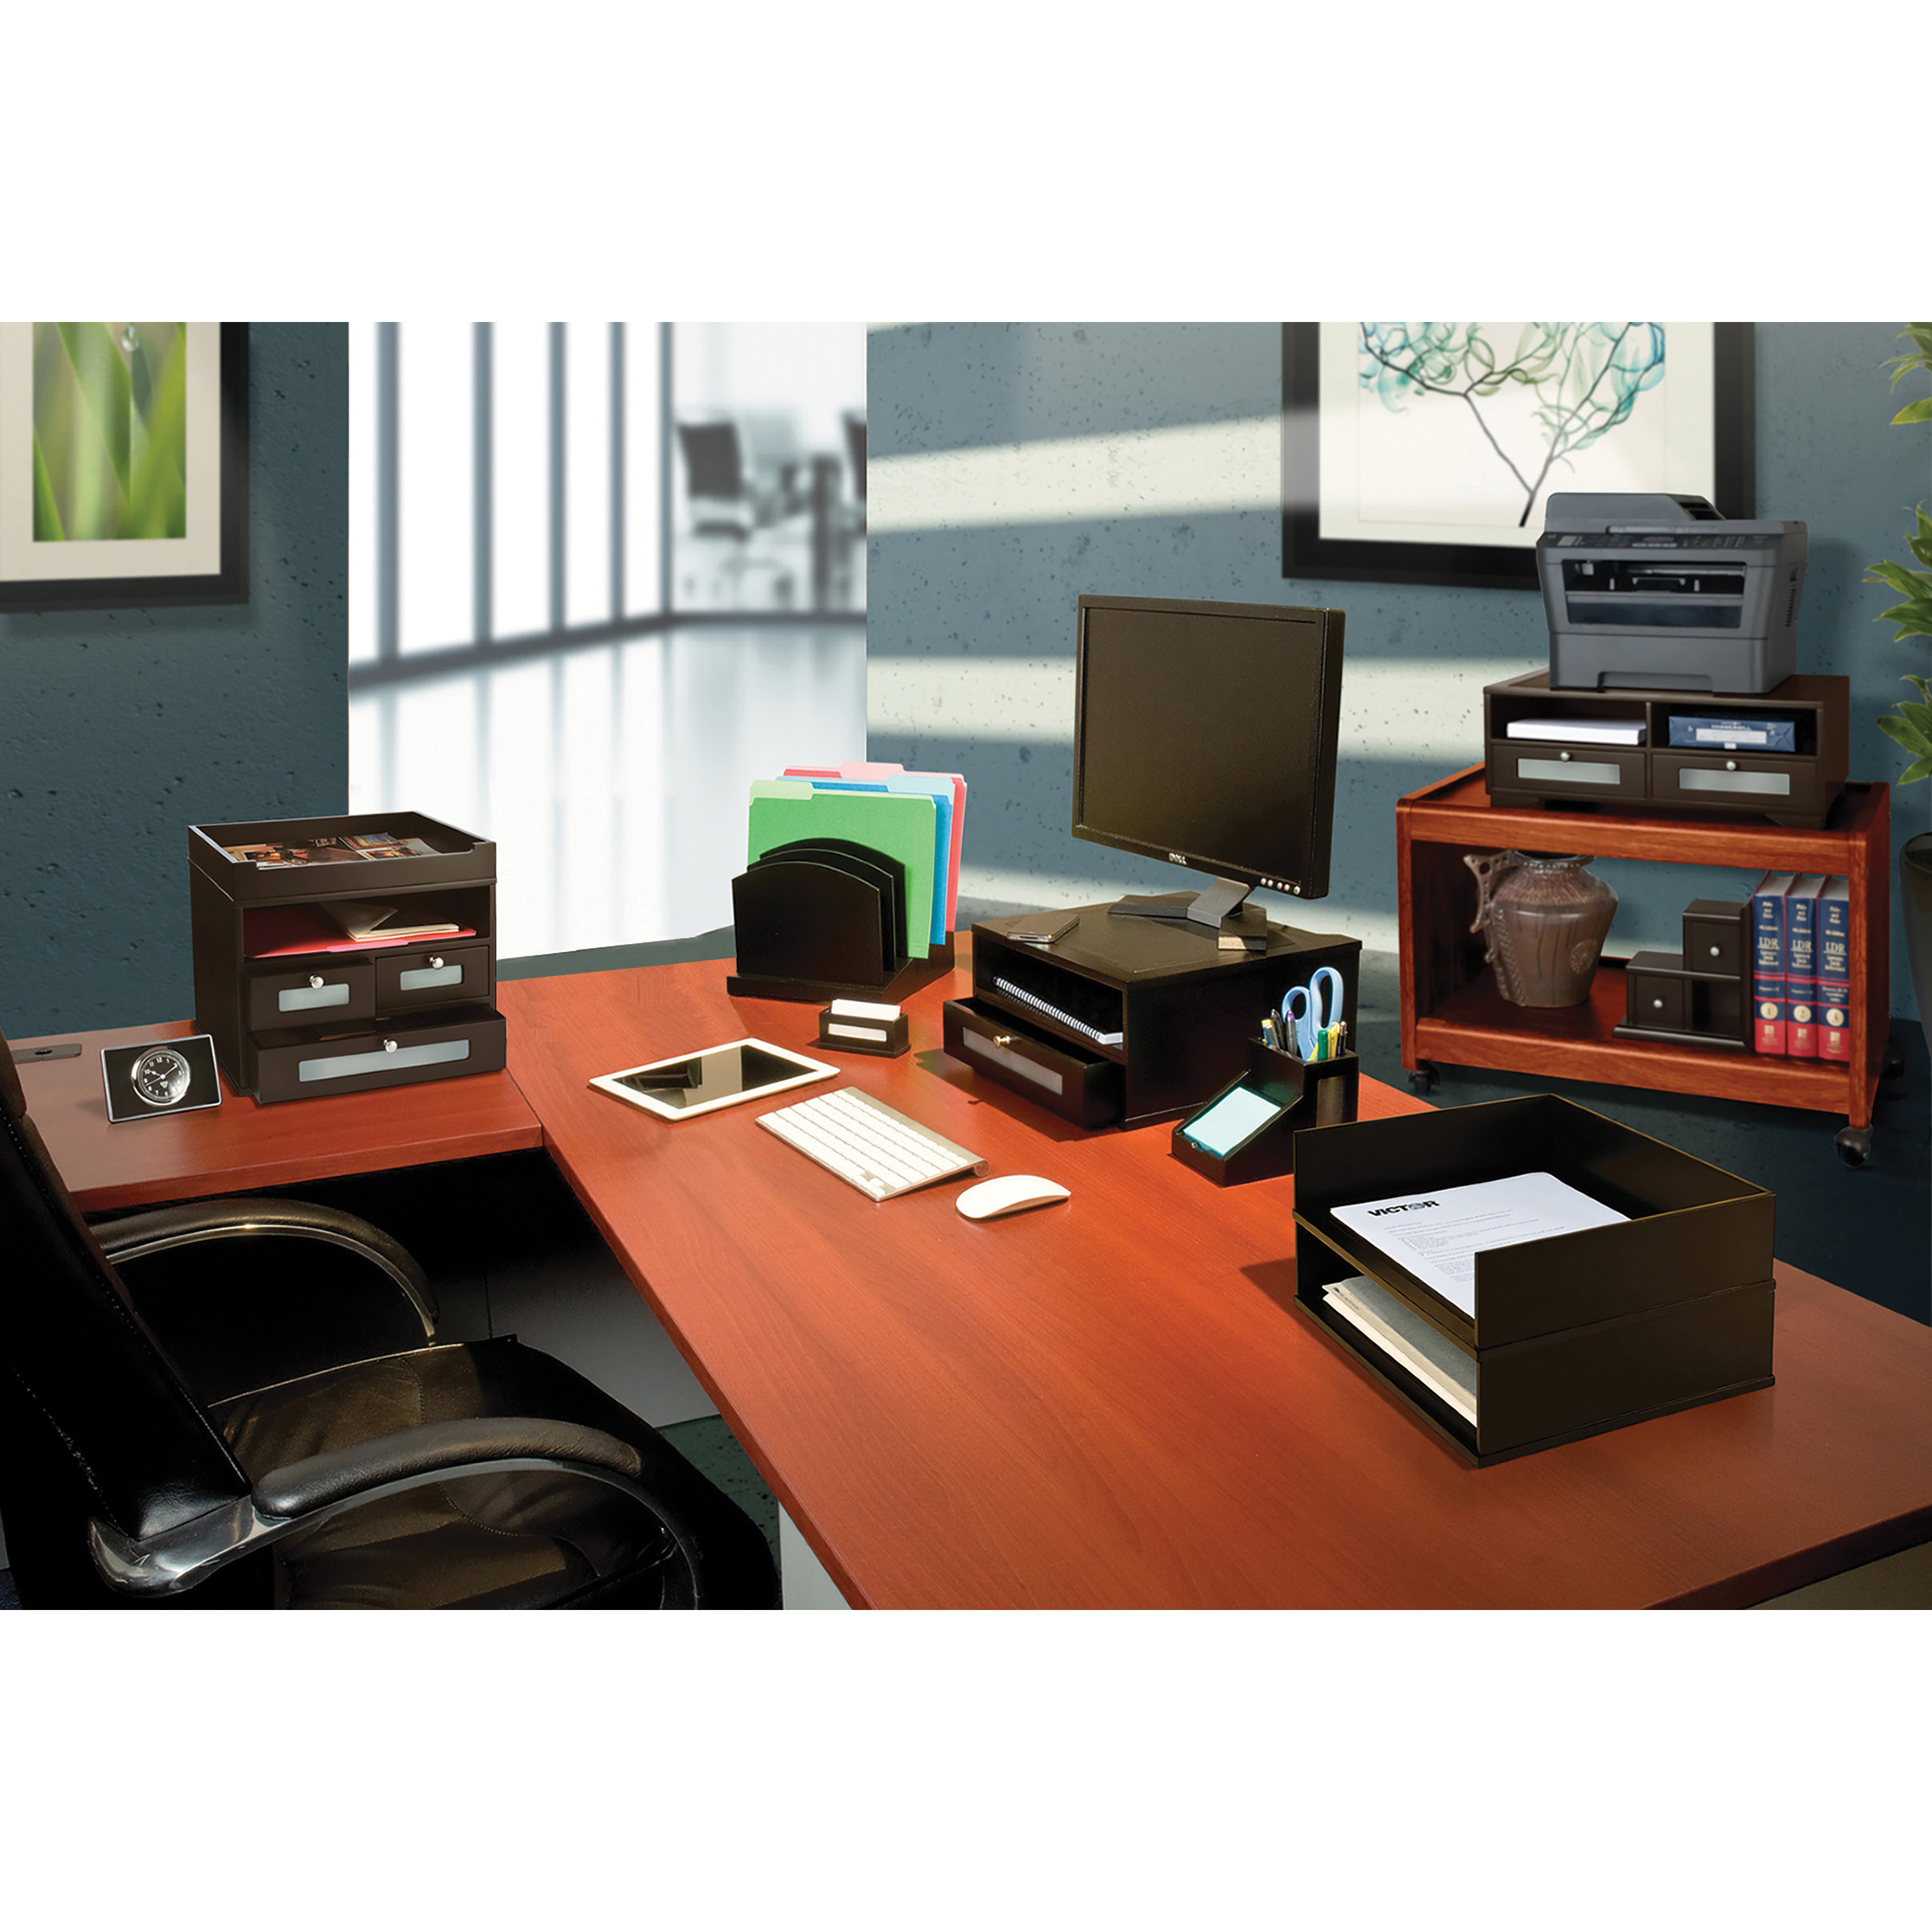 VICTOR 5500-5 Tidy Tower,Black